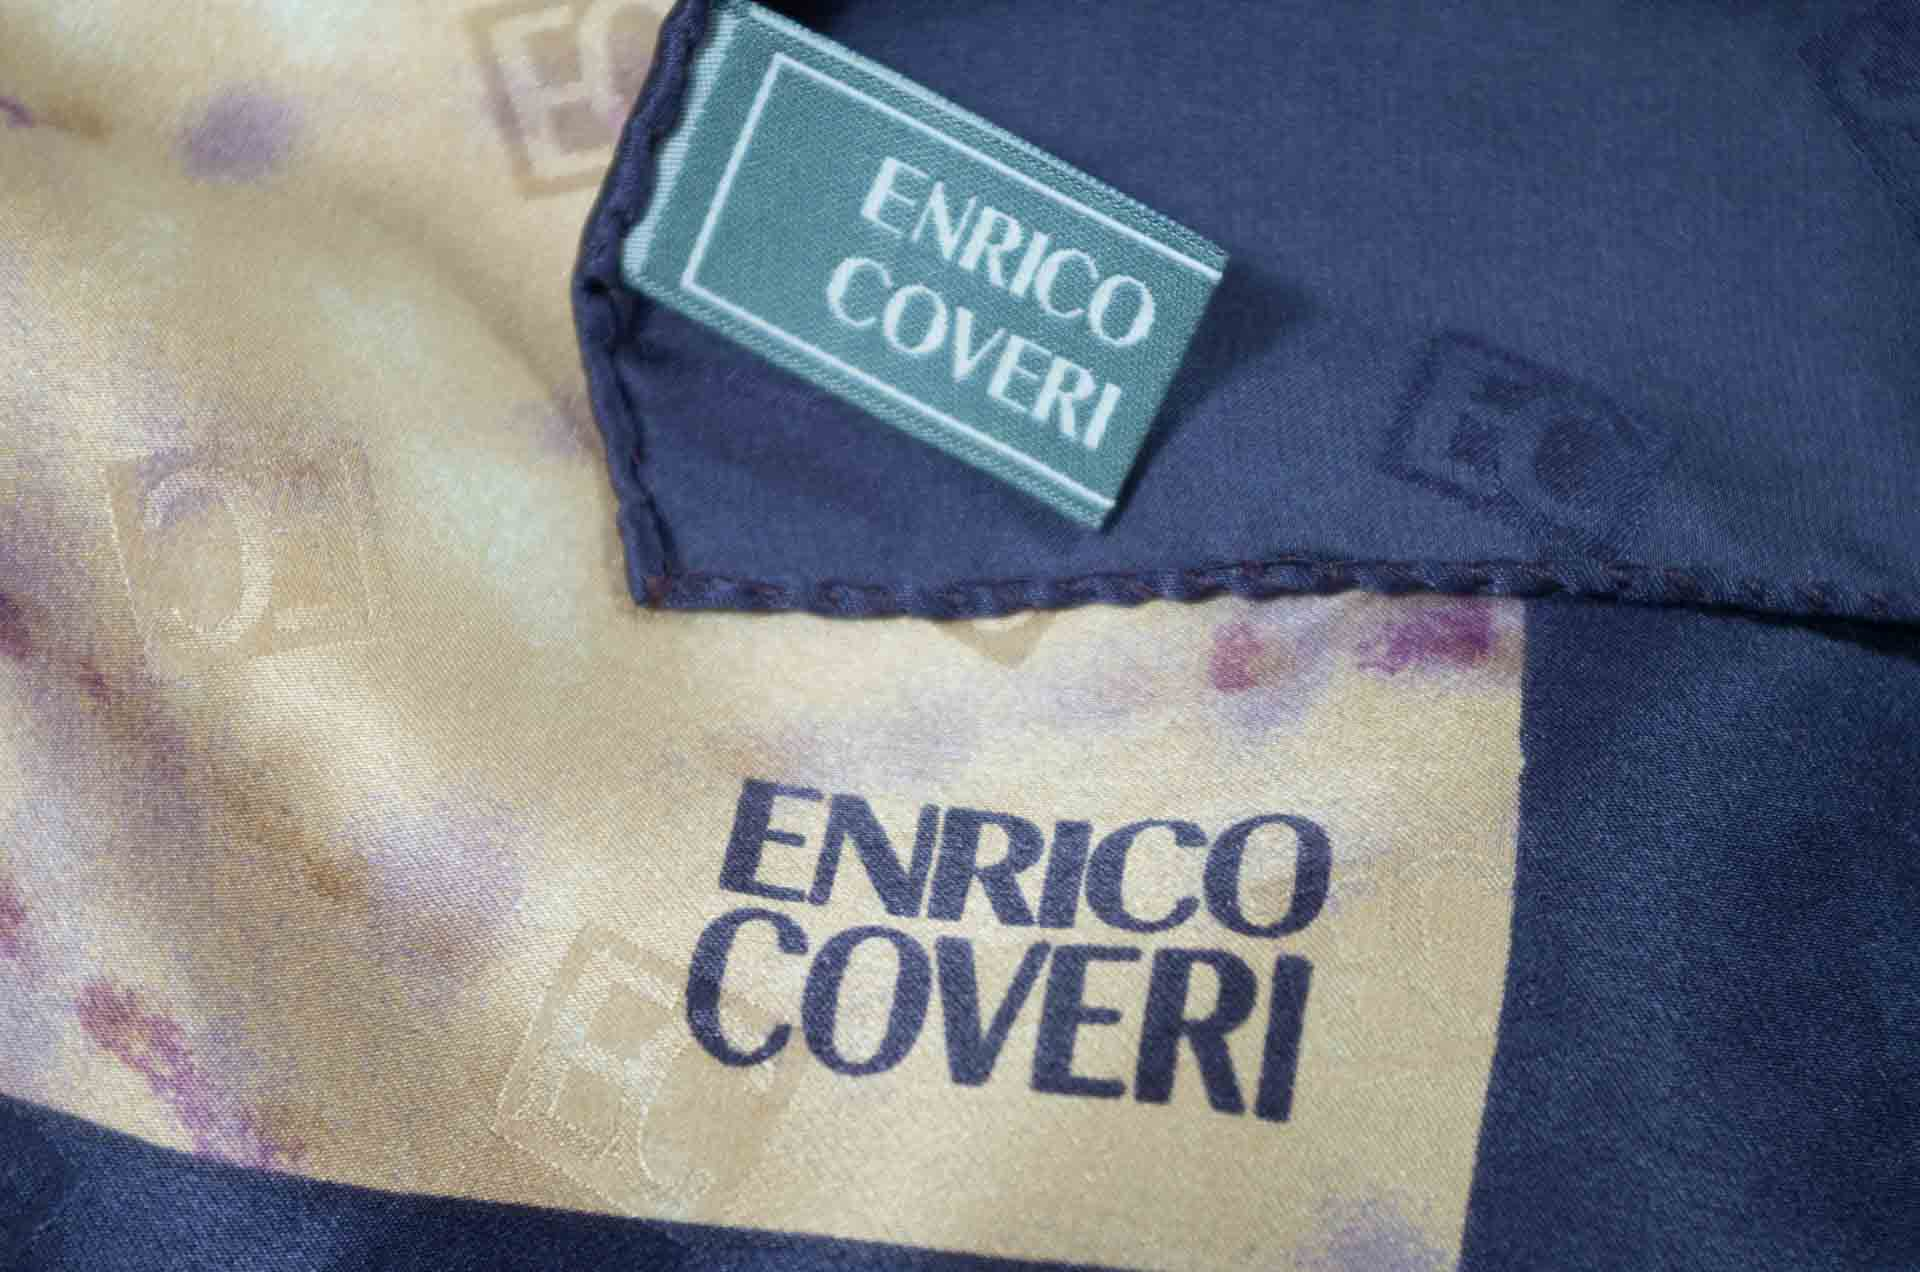 foulard enrico coveri in seta 4